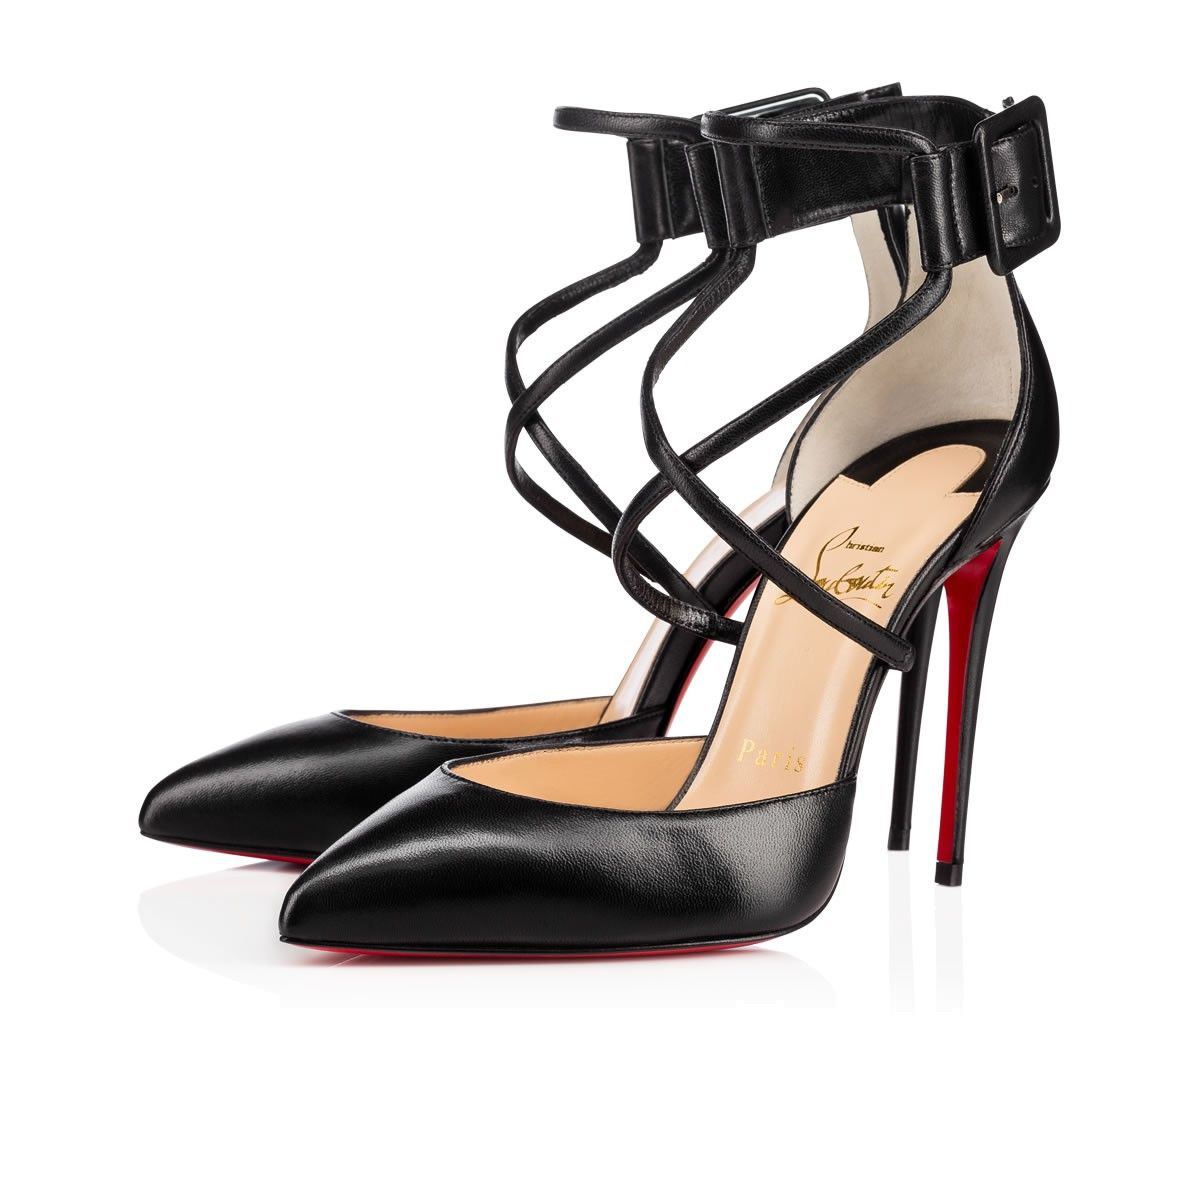 Women Shoes - Suzanna Nappa Shiny - Christian Louboutin